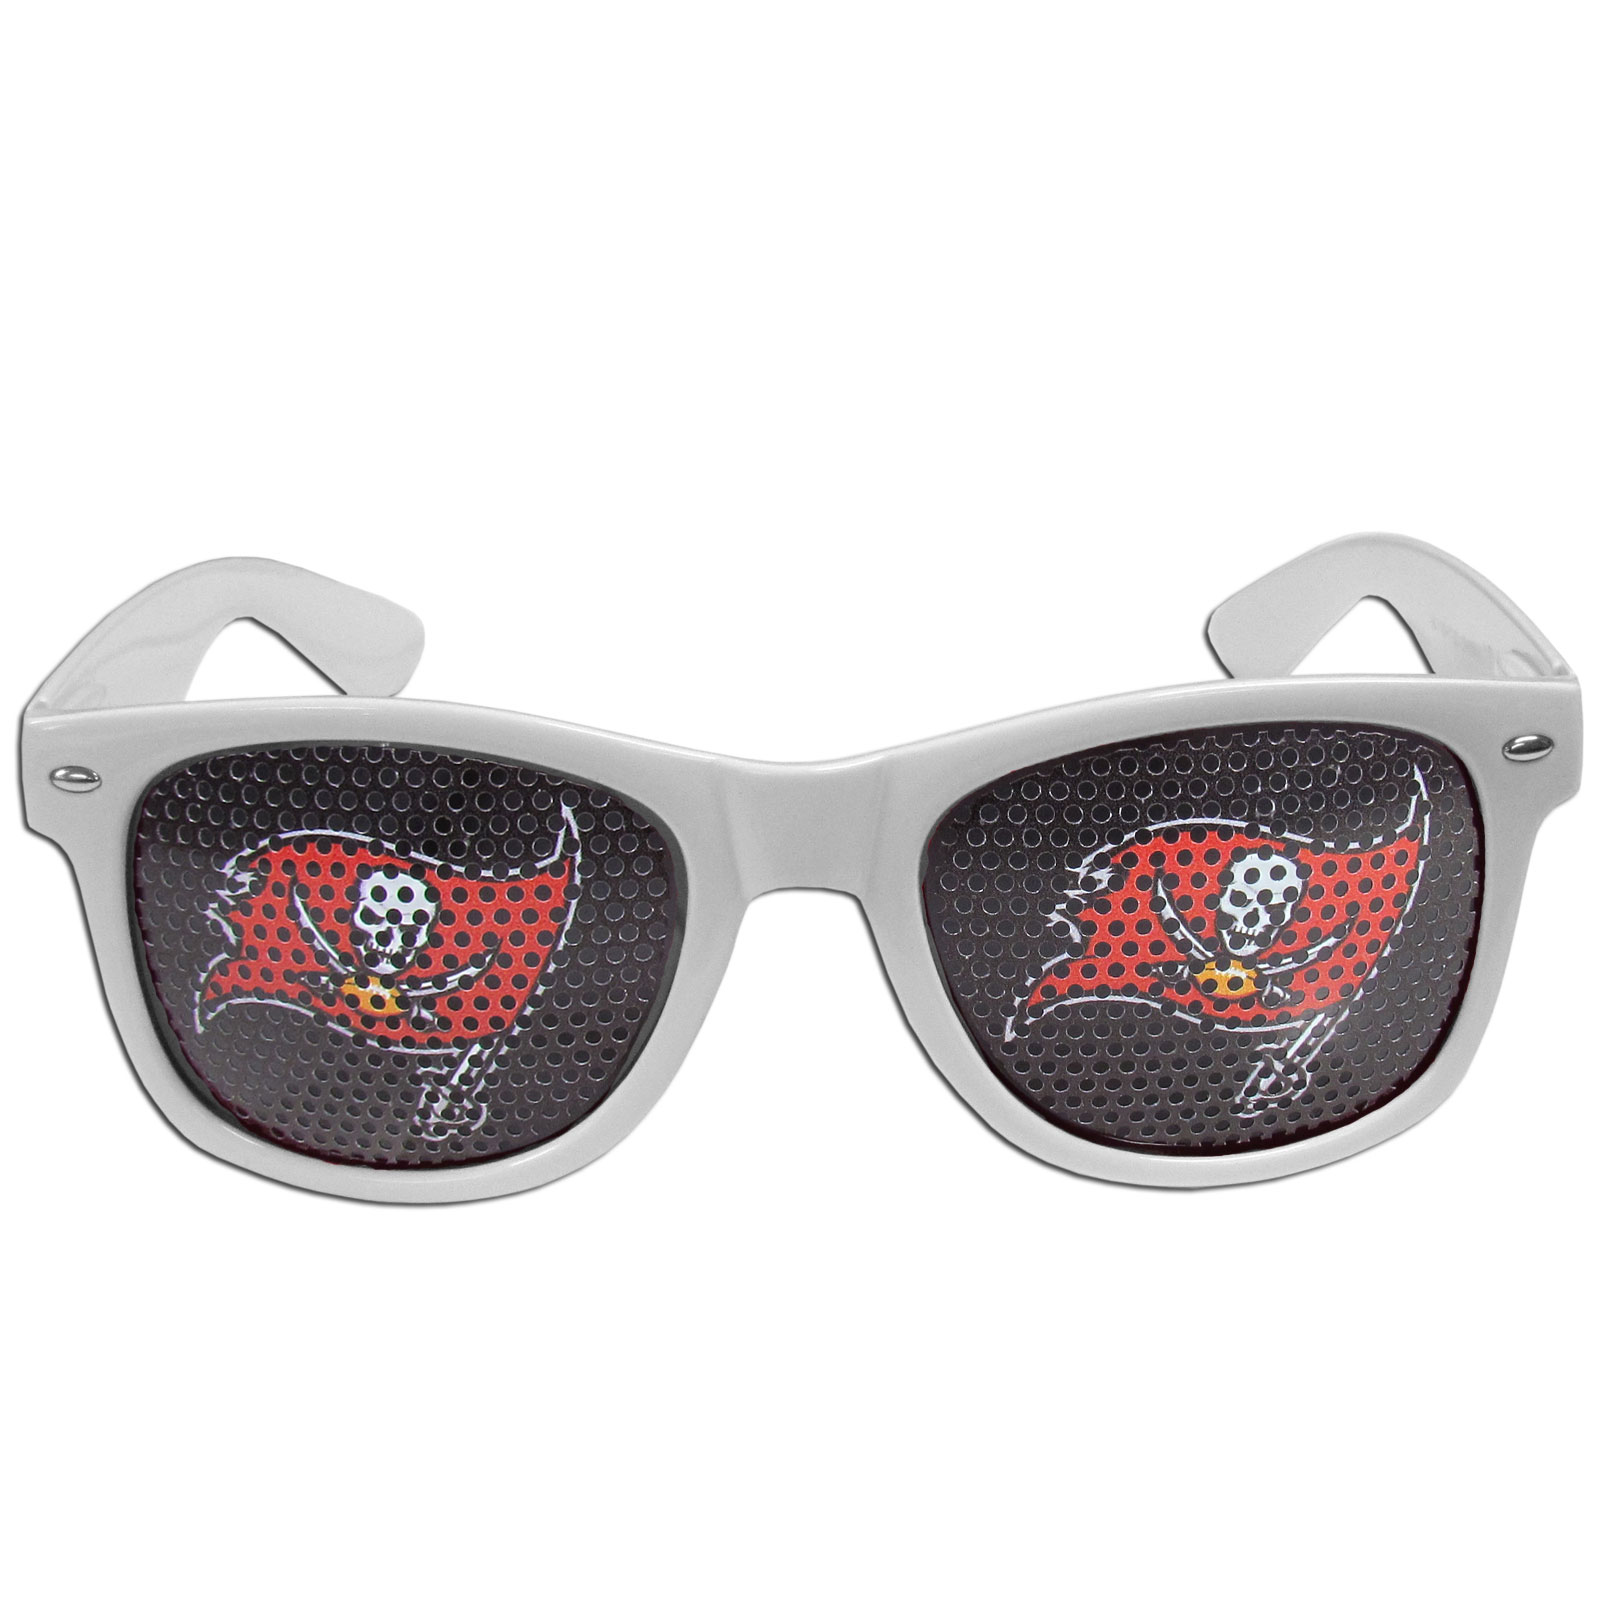 Tampa Bay Buccaneers Game Day Shades - Our officially licensed game day shades are the perfect accessory for the devoted Tampa Bay Buccaneers fan! The sunglasses have durable polycarbonate frames with flex hinges for comfort and damage resistance. The lenses feature brightly colored team clings that are perforated for visibility.